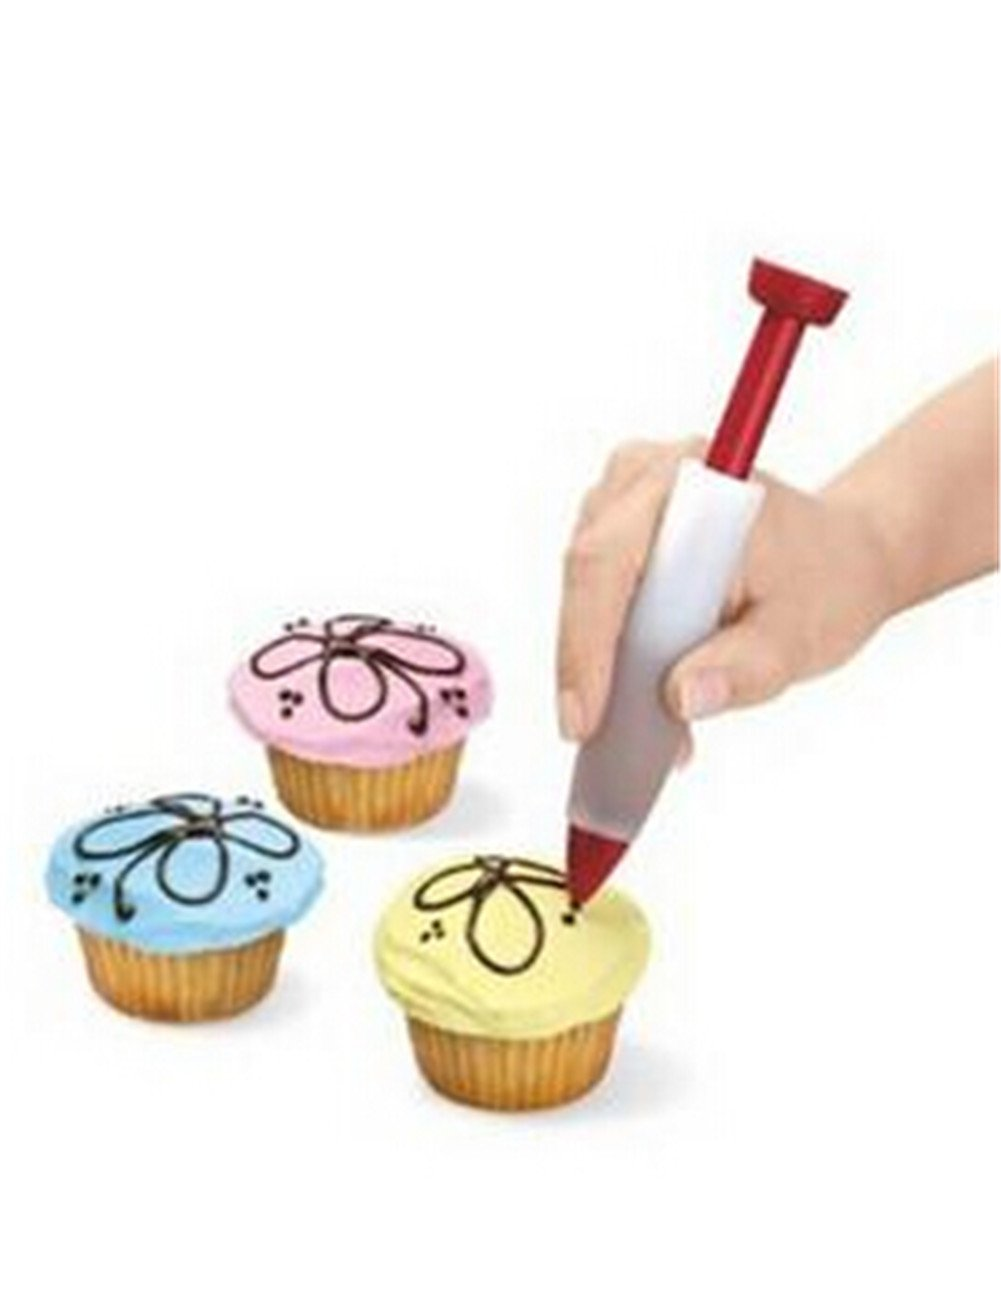 HENGSONG Homemade Cake Tools Pastry Biscuits Cream Chocolate Icing Decoration Pen Silicone